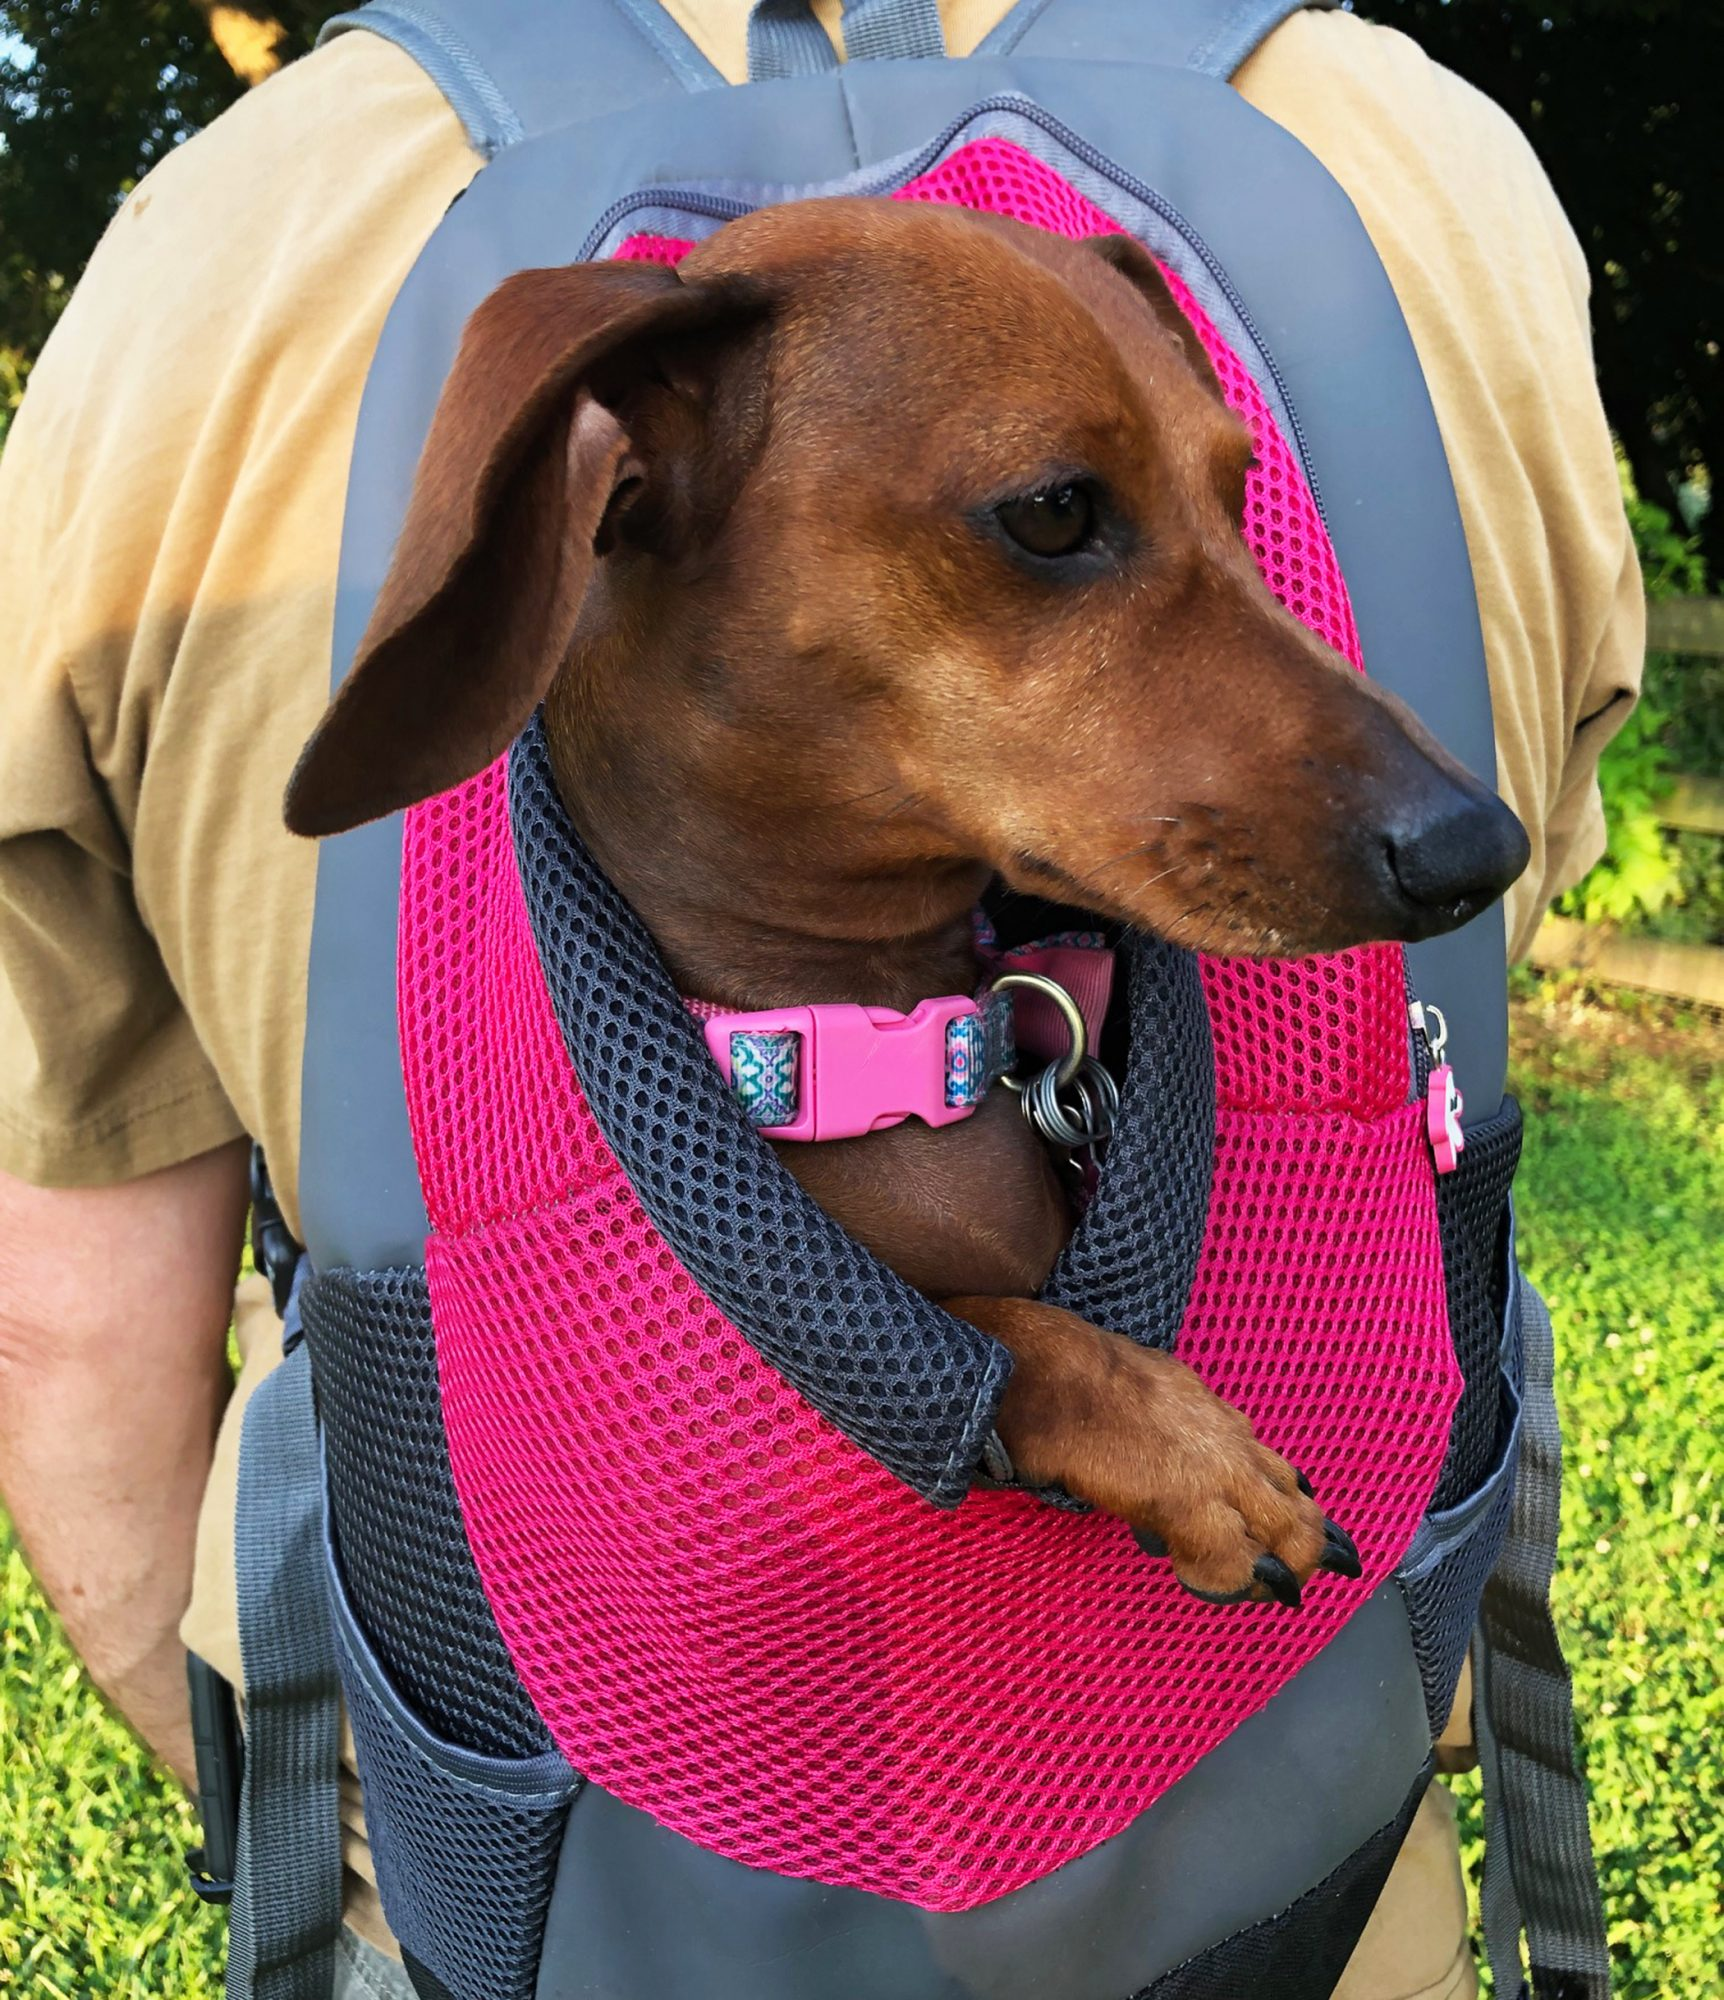 Freya, the rescue dog, nestled in pink and grey backpack